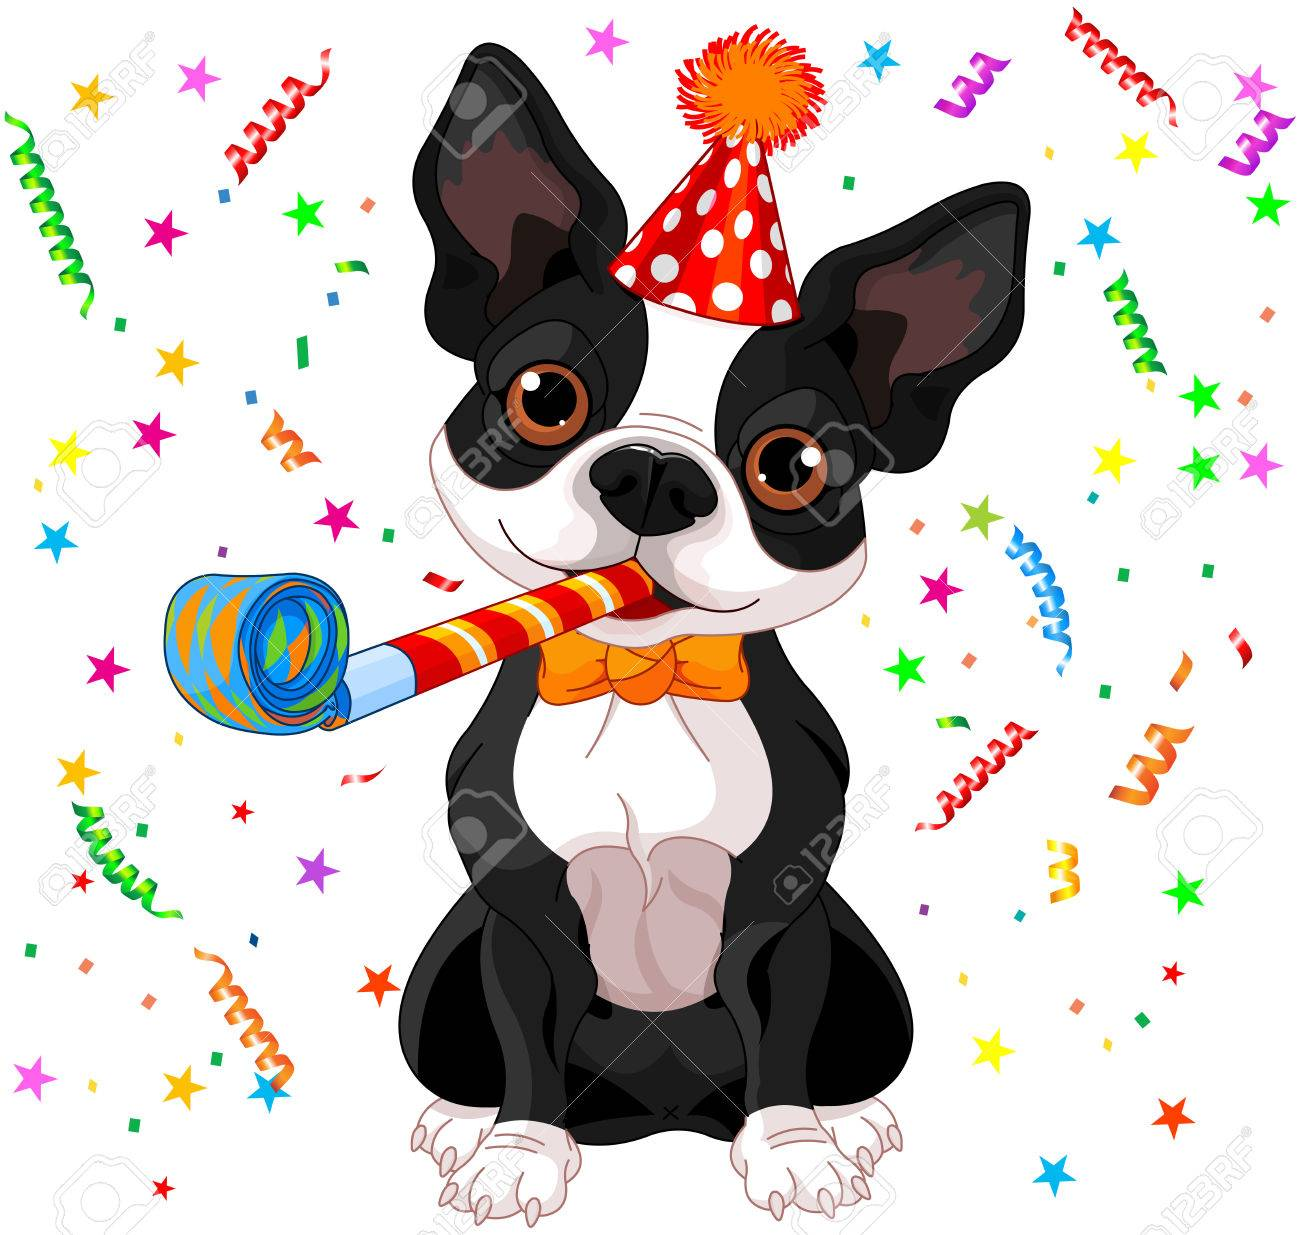 Que faire quand on trouve un chien? 35588778-illustration-of-cute-boston-terrier-celebrating